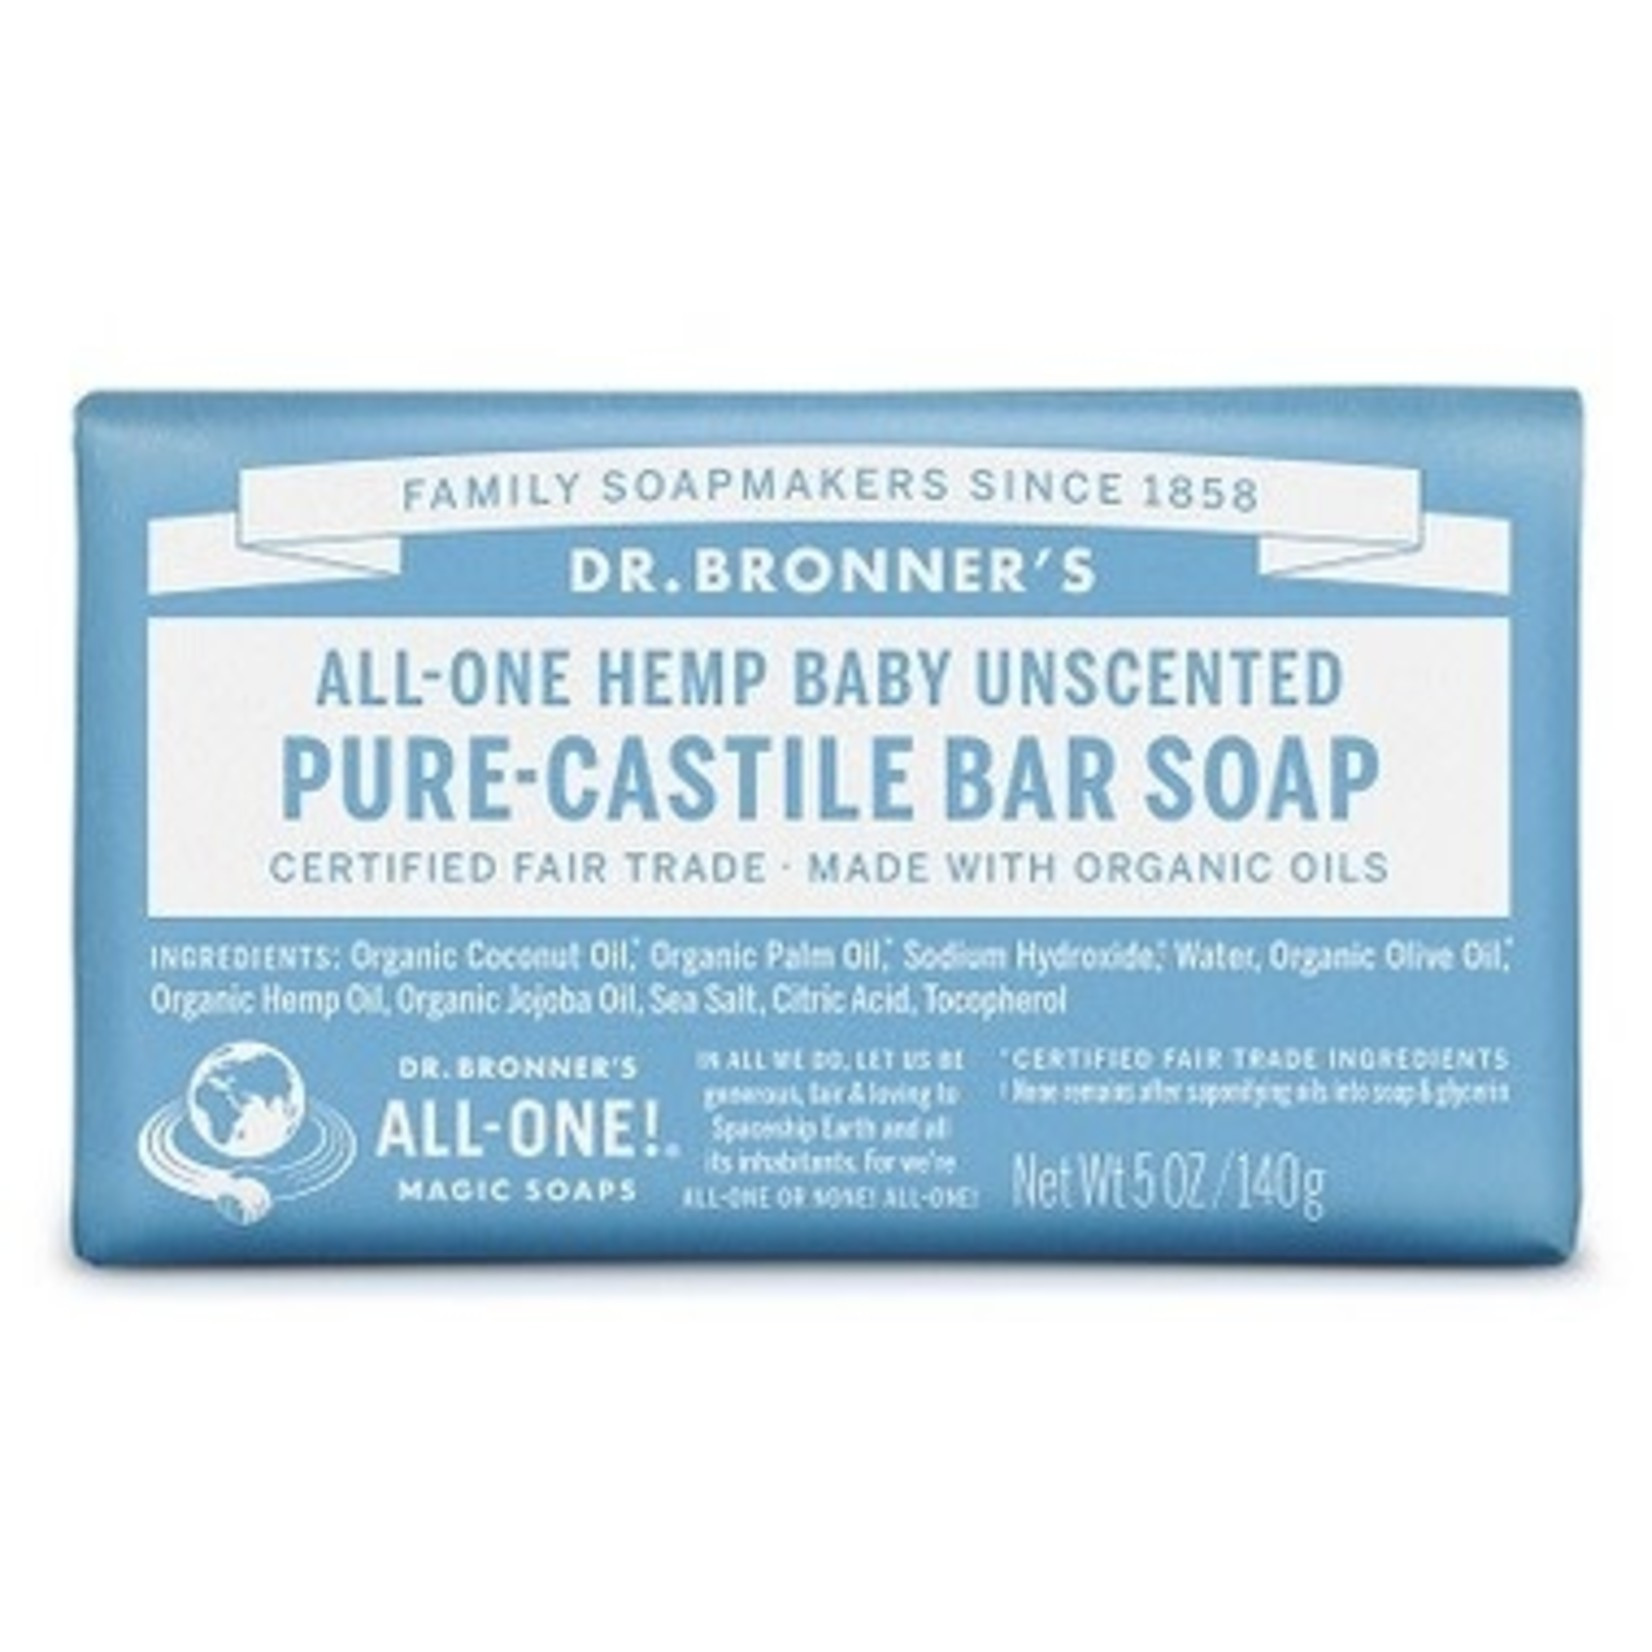 DR. BRONNER'S PURE CASTILE SOAP - BABY (UNSCENTED)